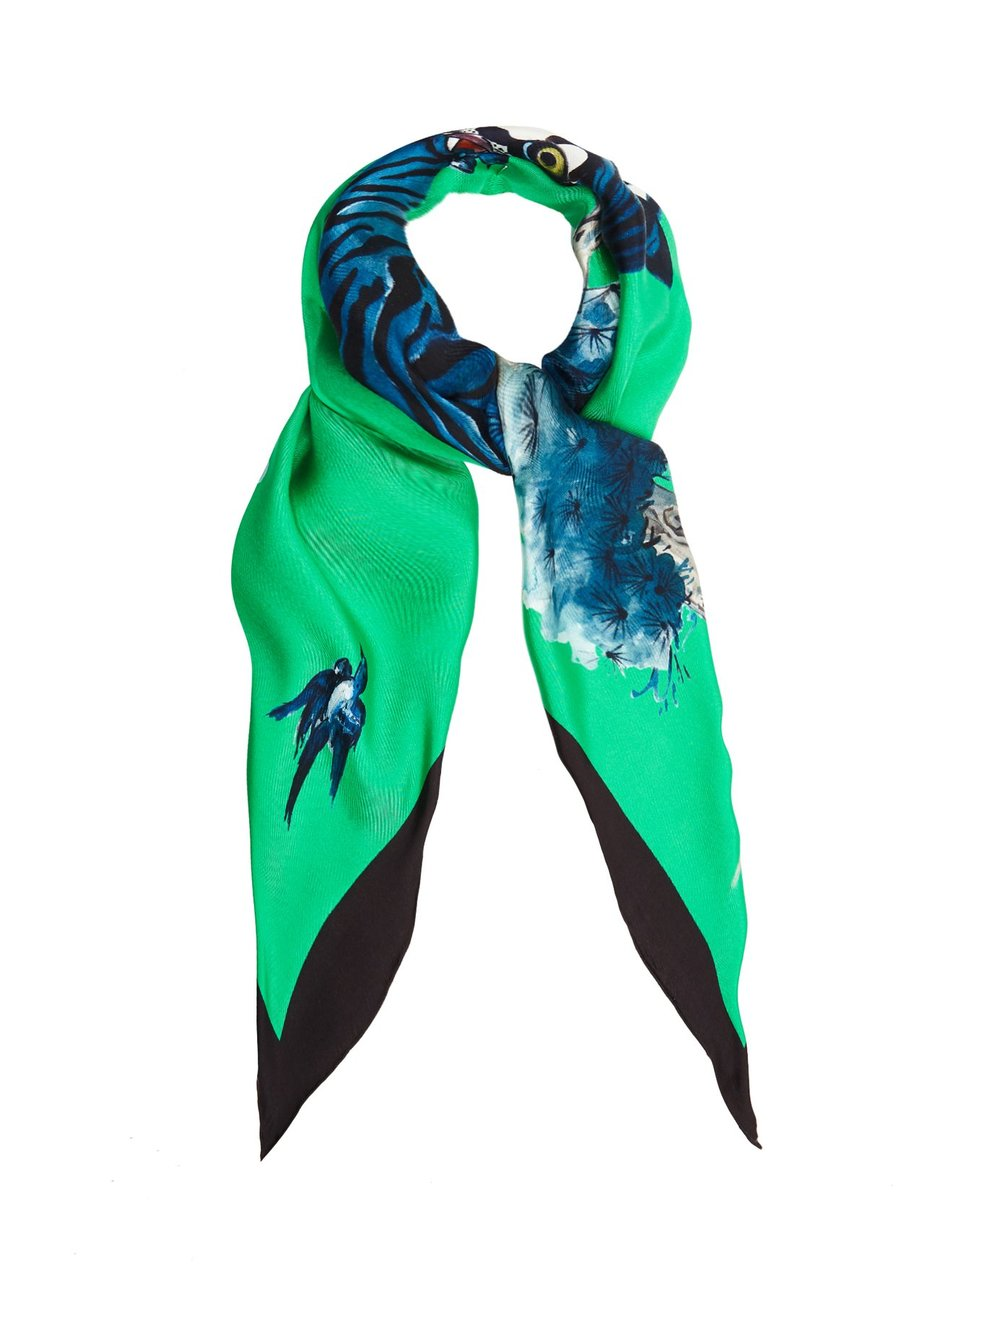 Silk scarf, £310 by Gucci at Matches